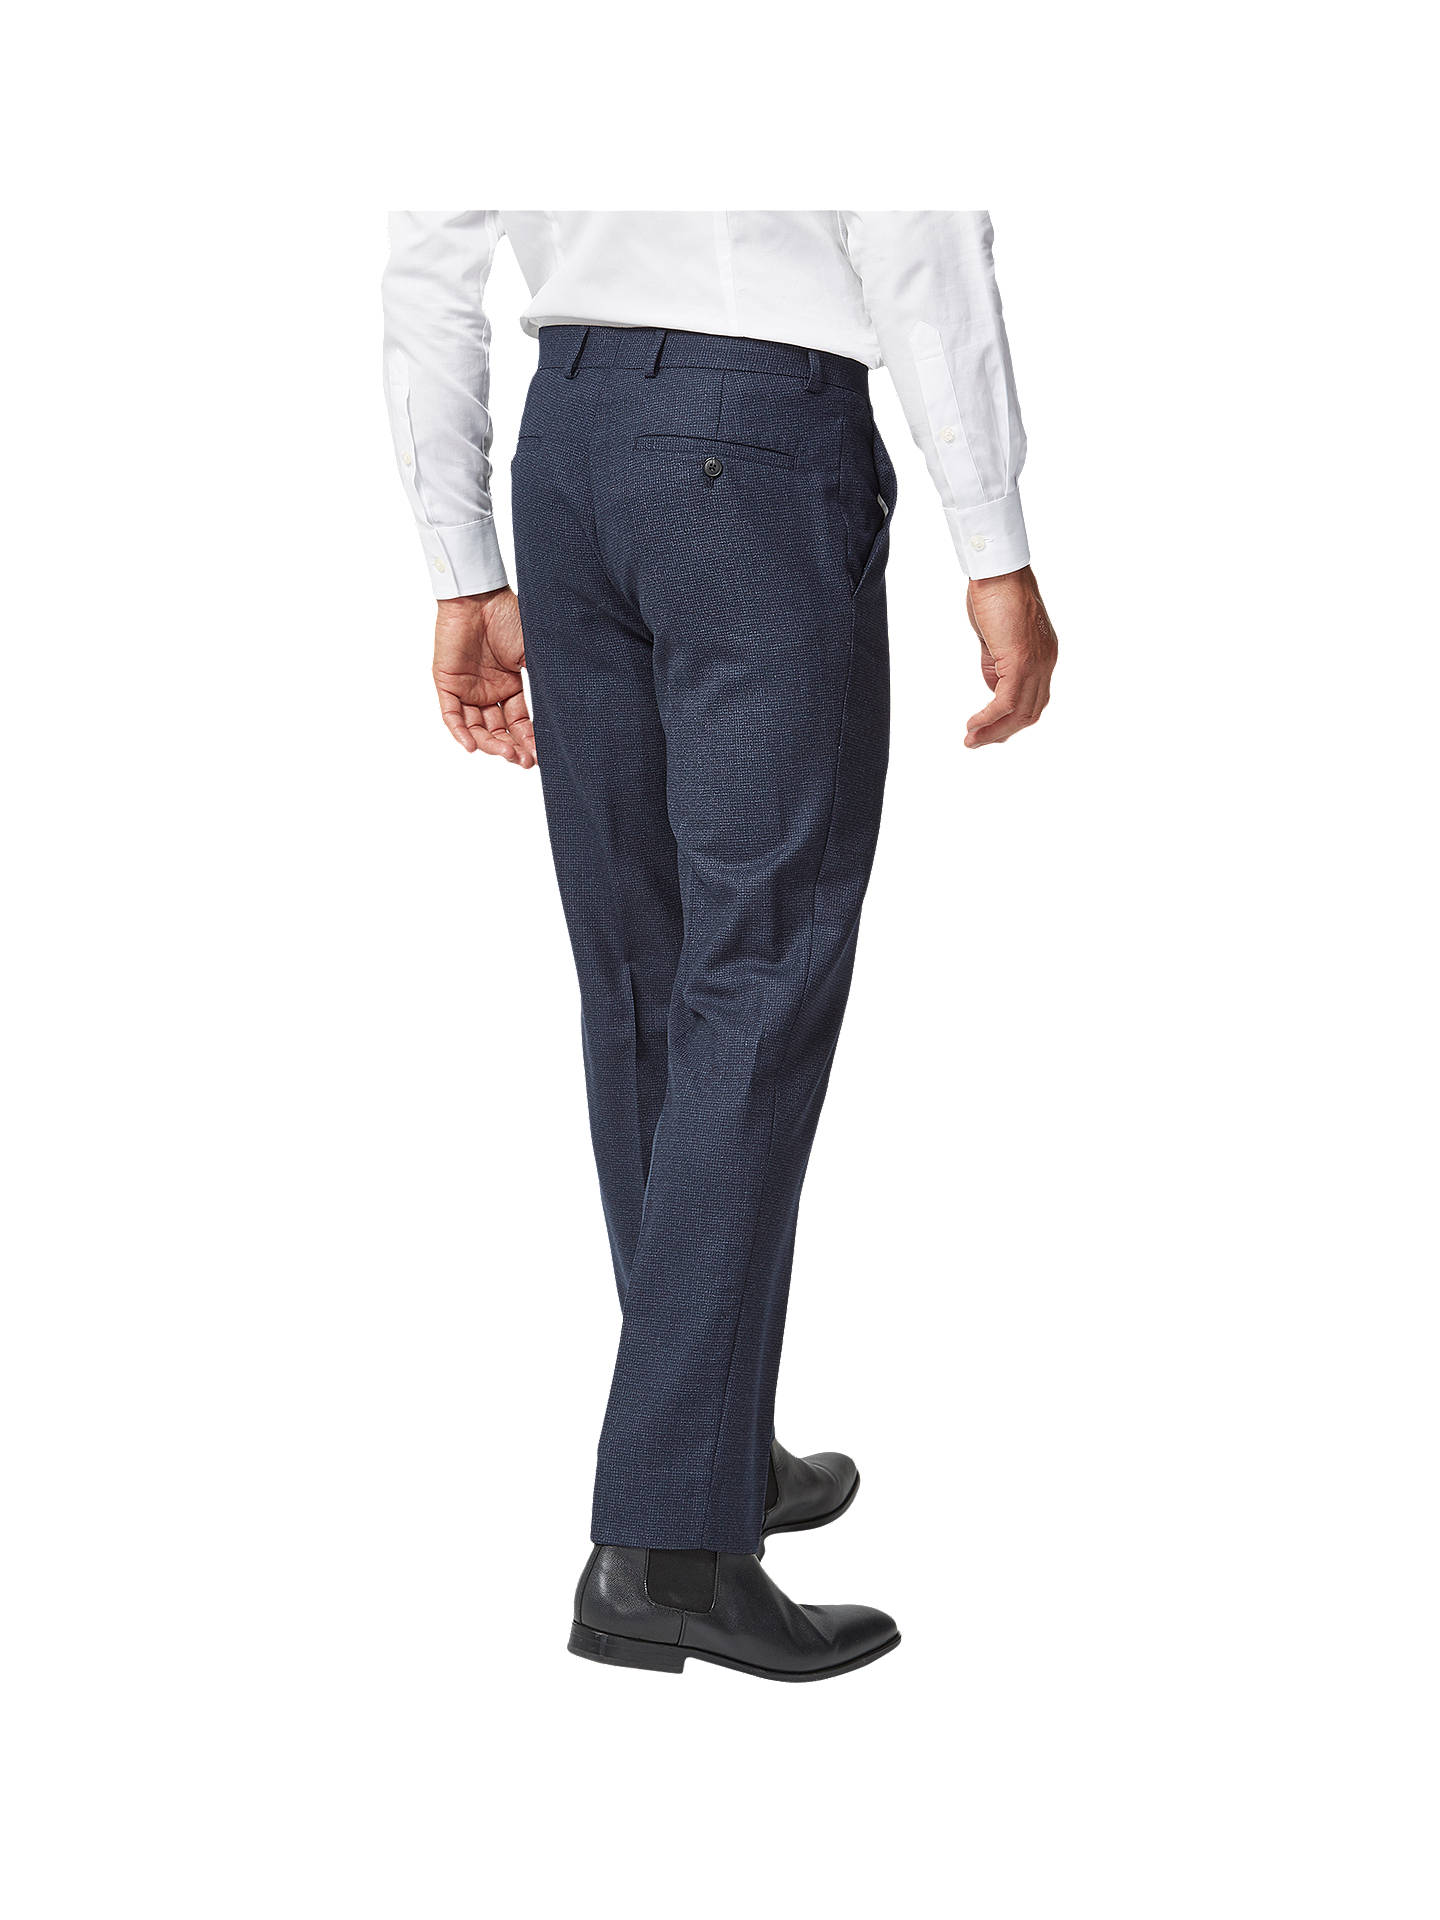 BuyRichard James Mayfair Milled Wool Slim Suit Trousers, Navy, 34R Online at johnlewis.com